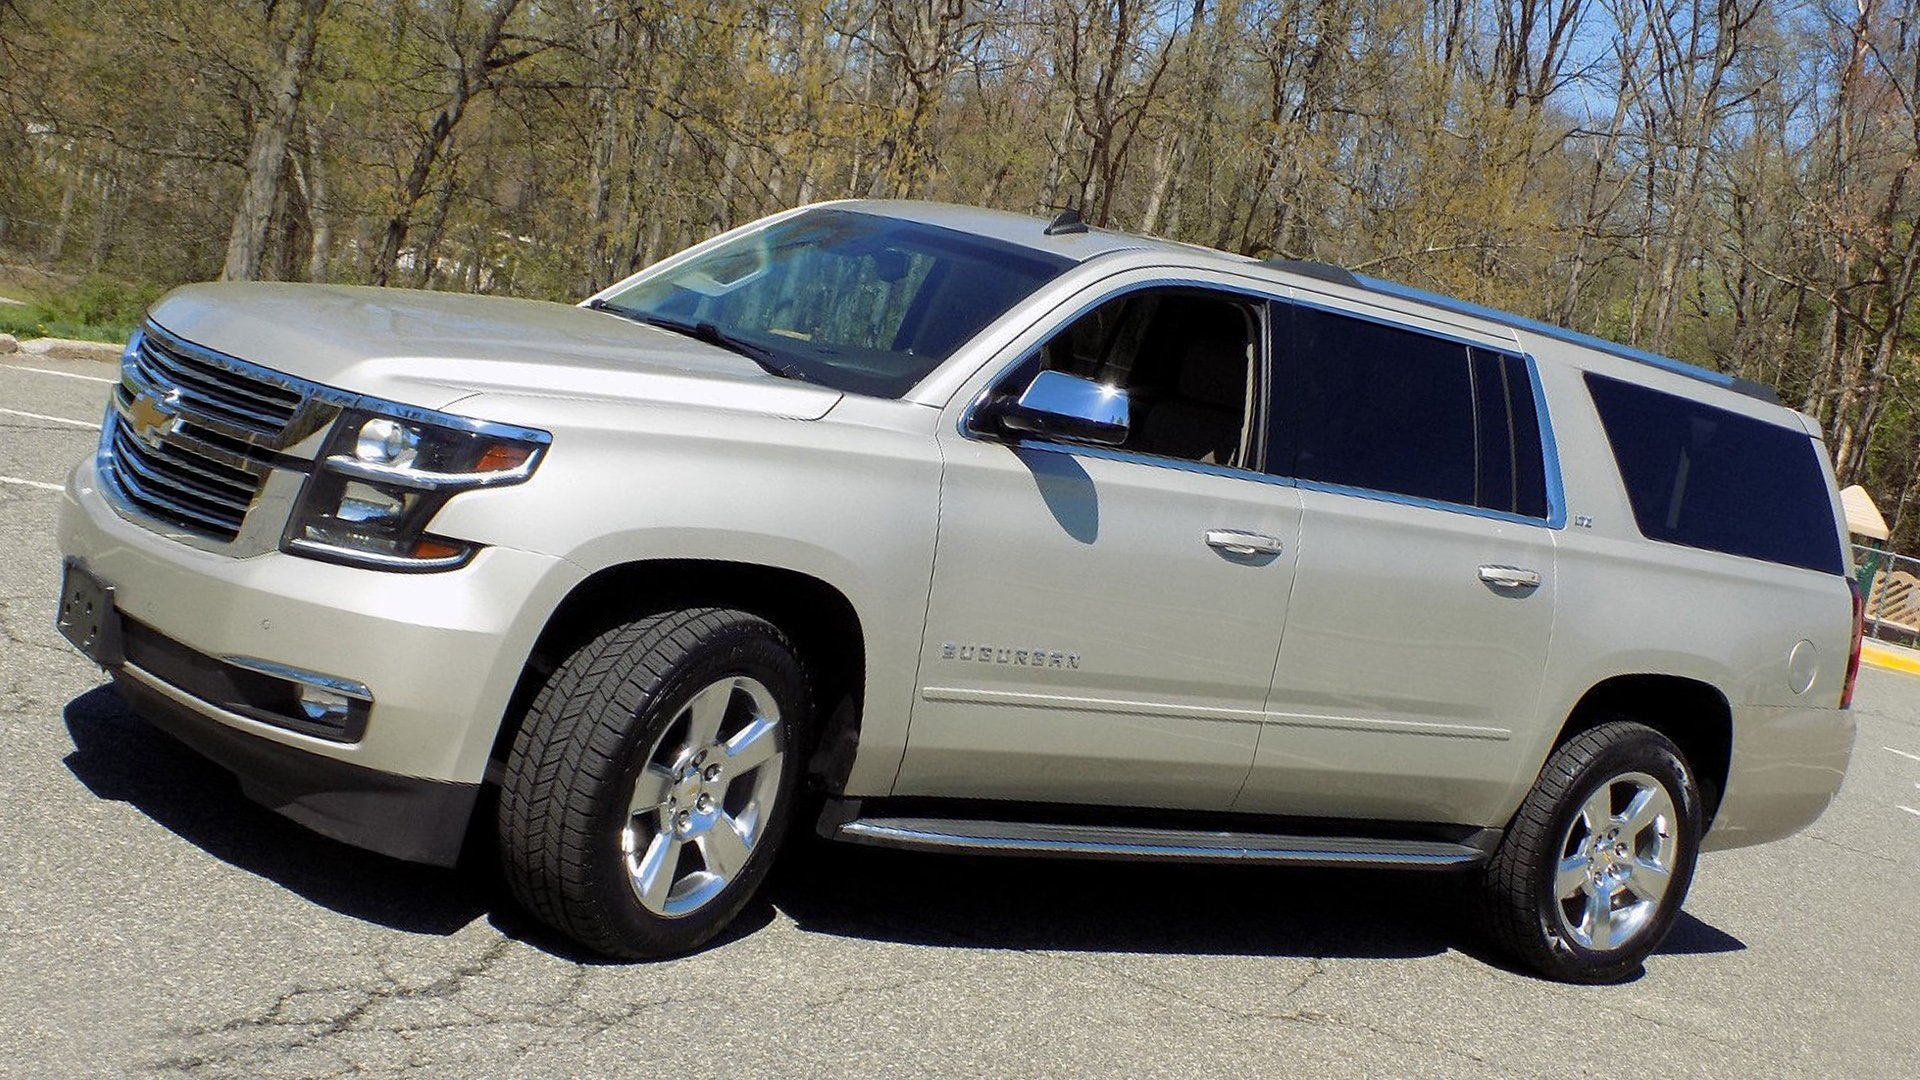 Chevrolet Suburban Turbo Diesel HD